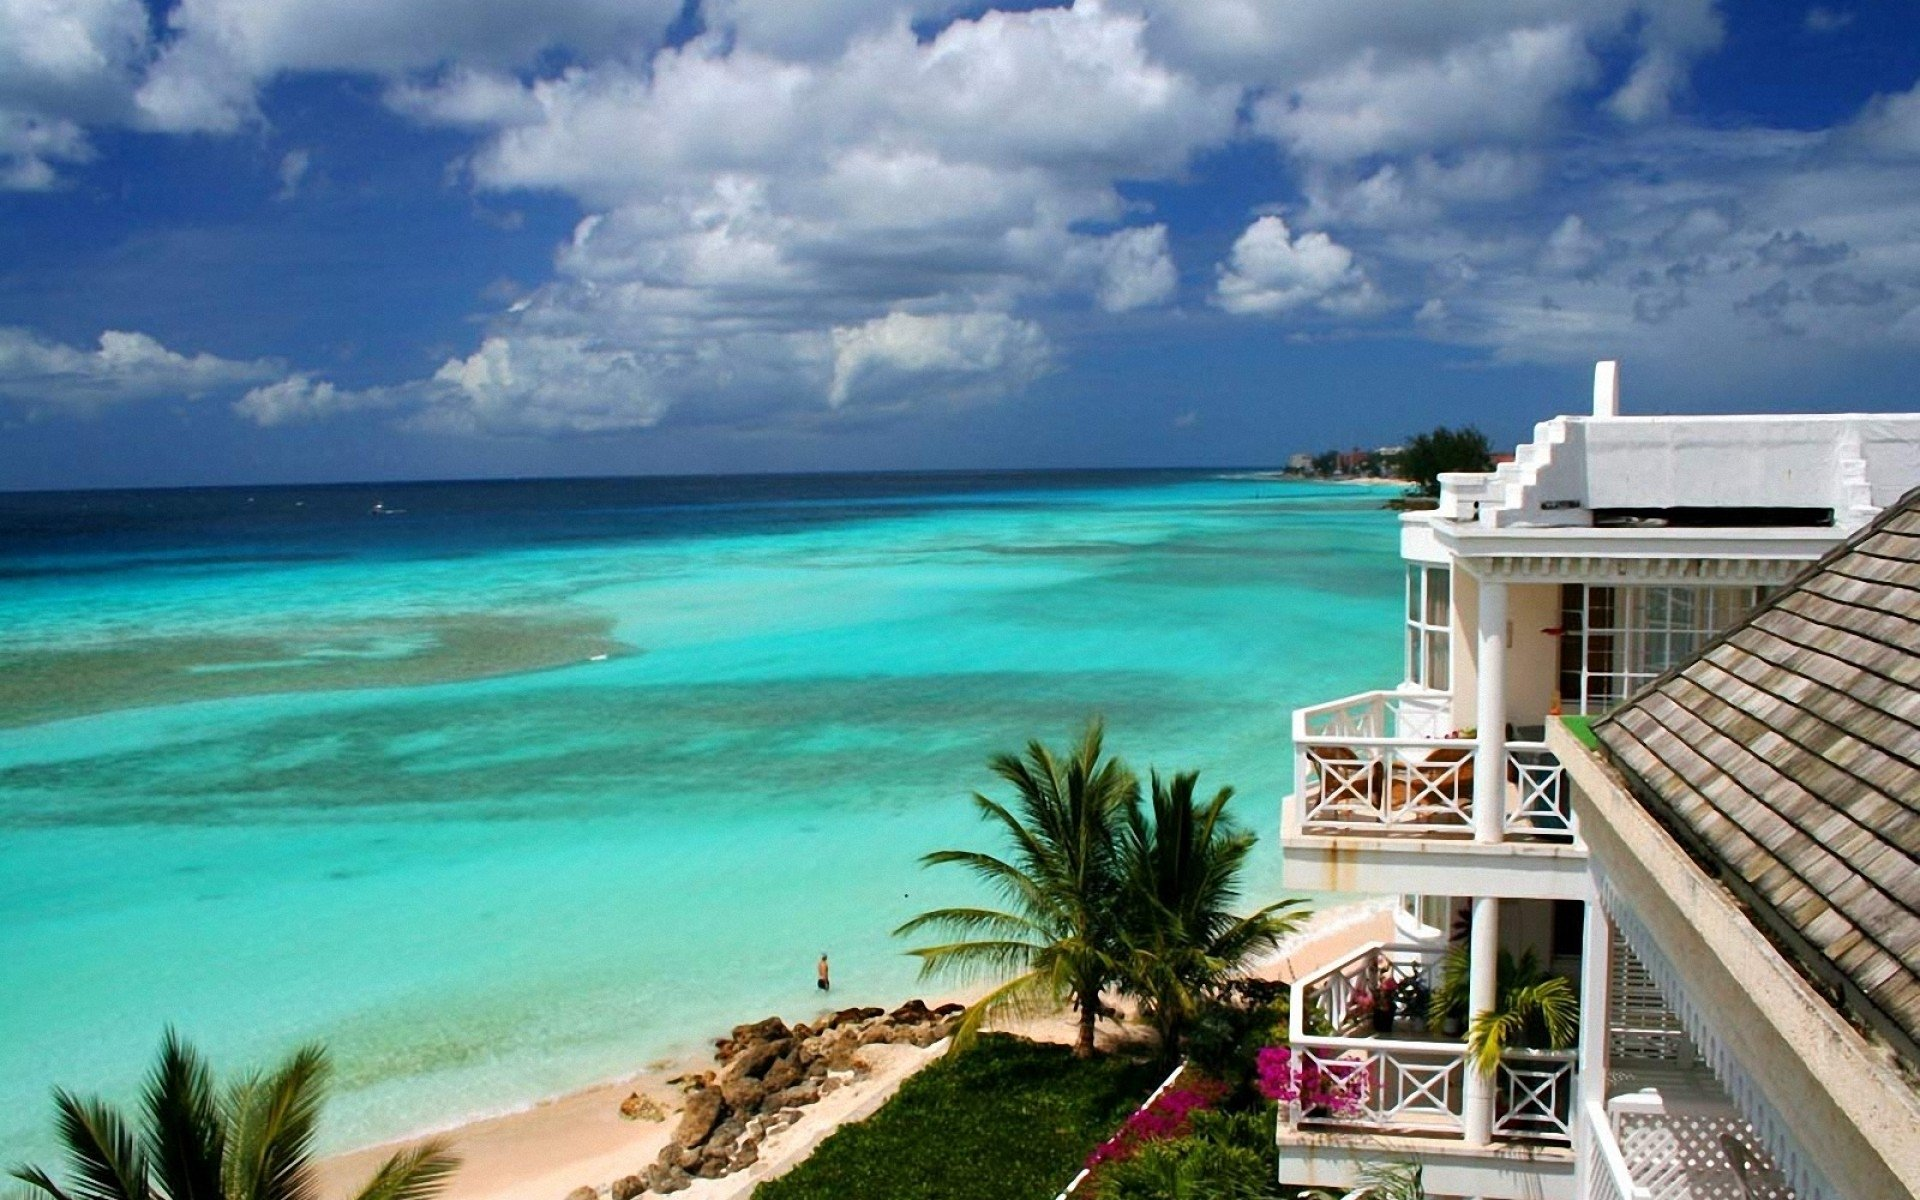 House on the Beach in Barbados HD Wallpaper Background Image 1920x1200